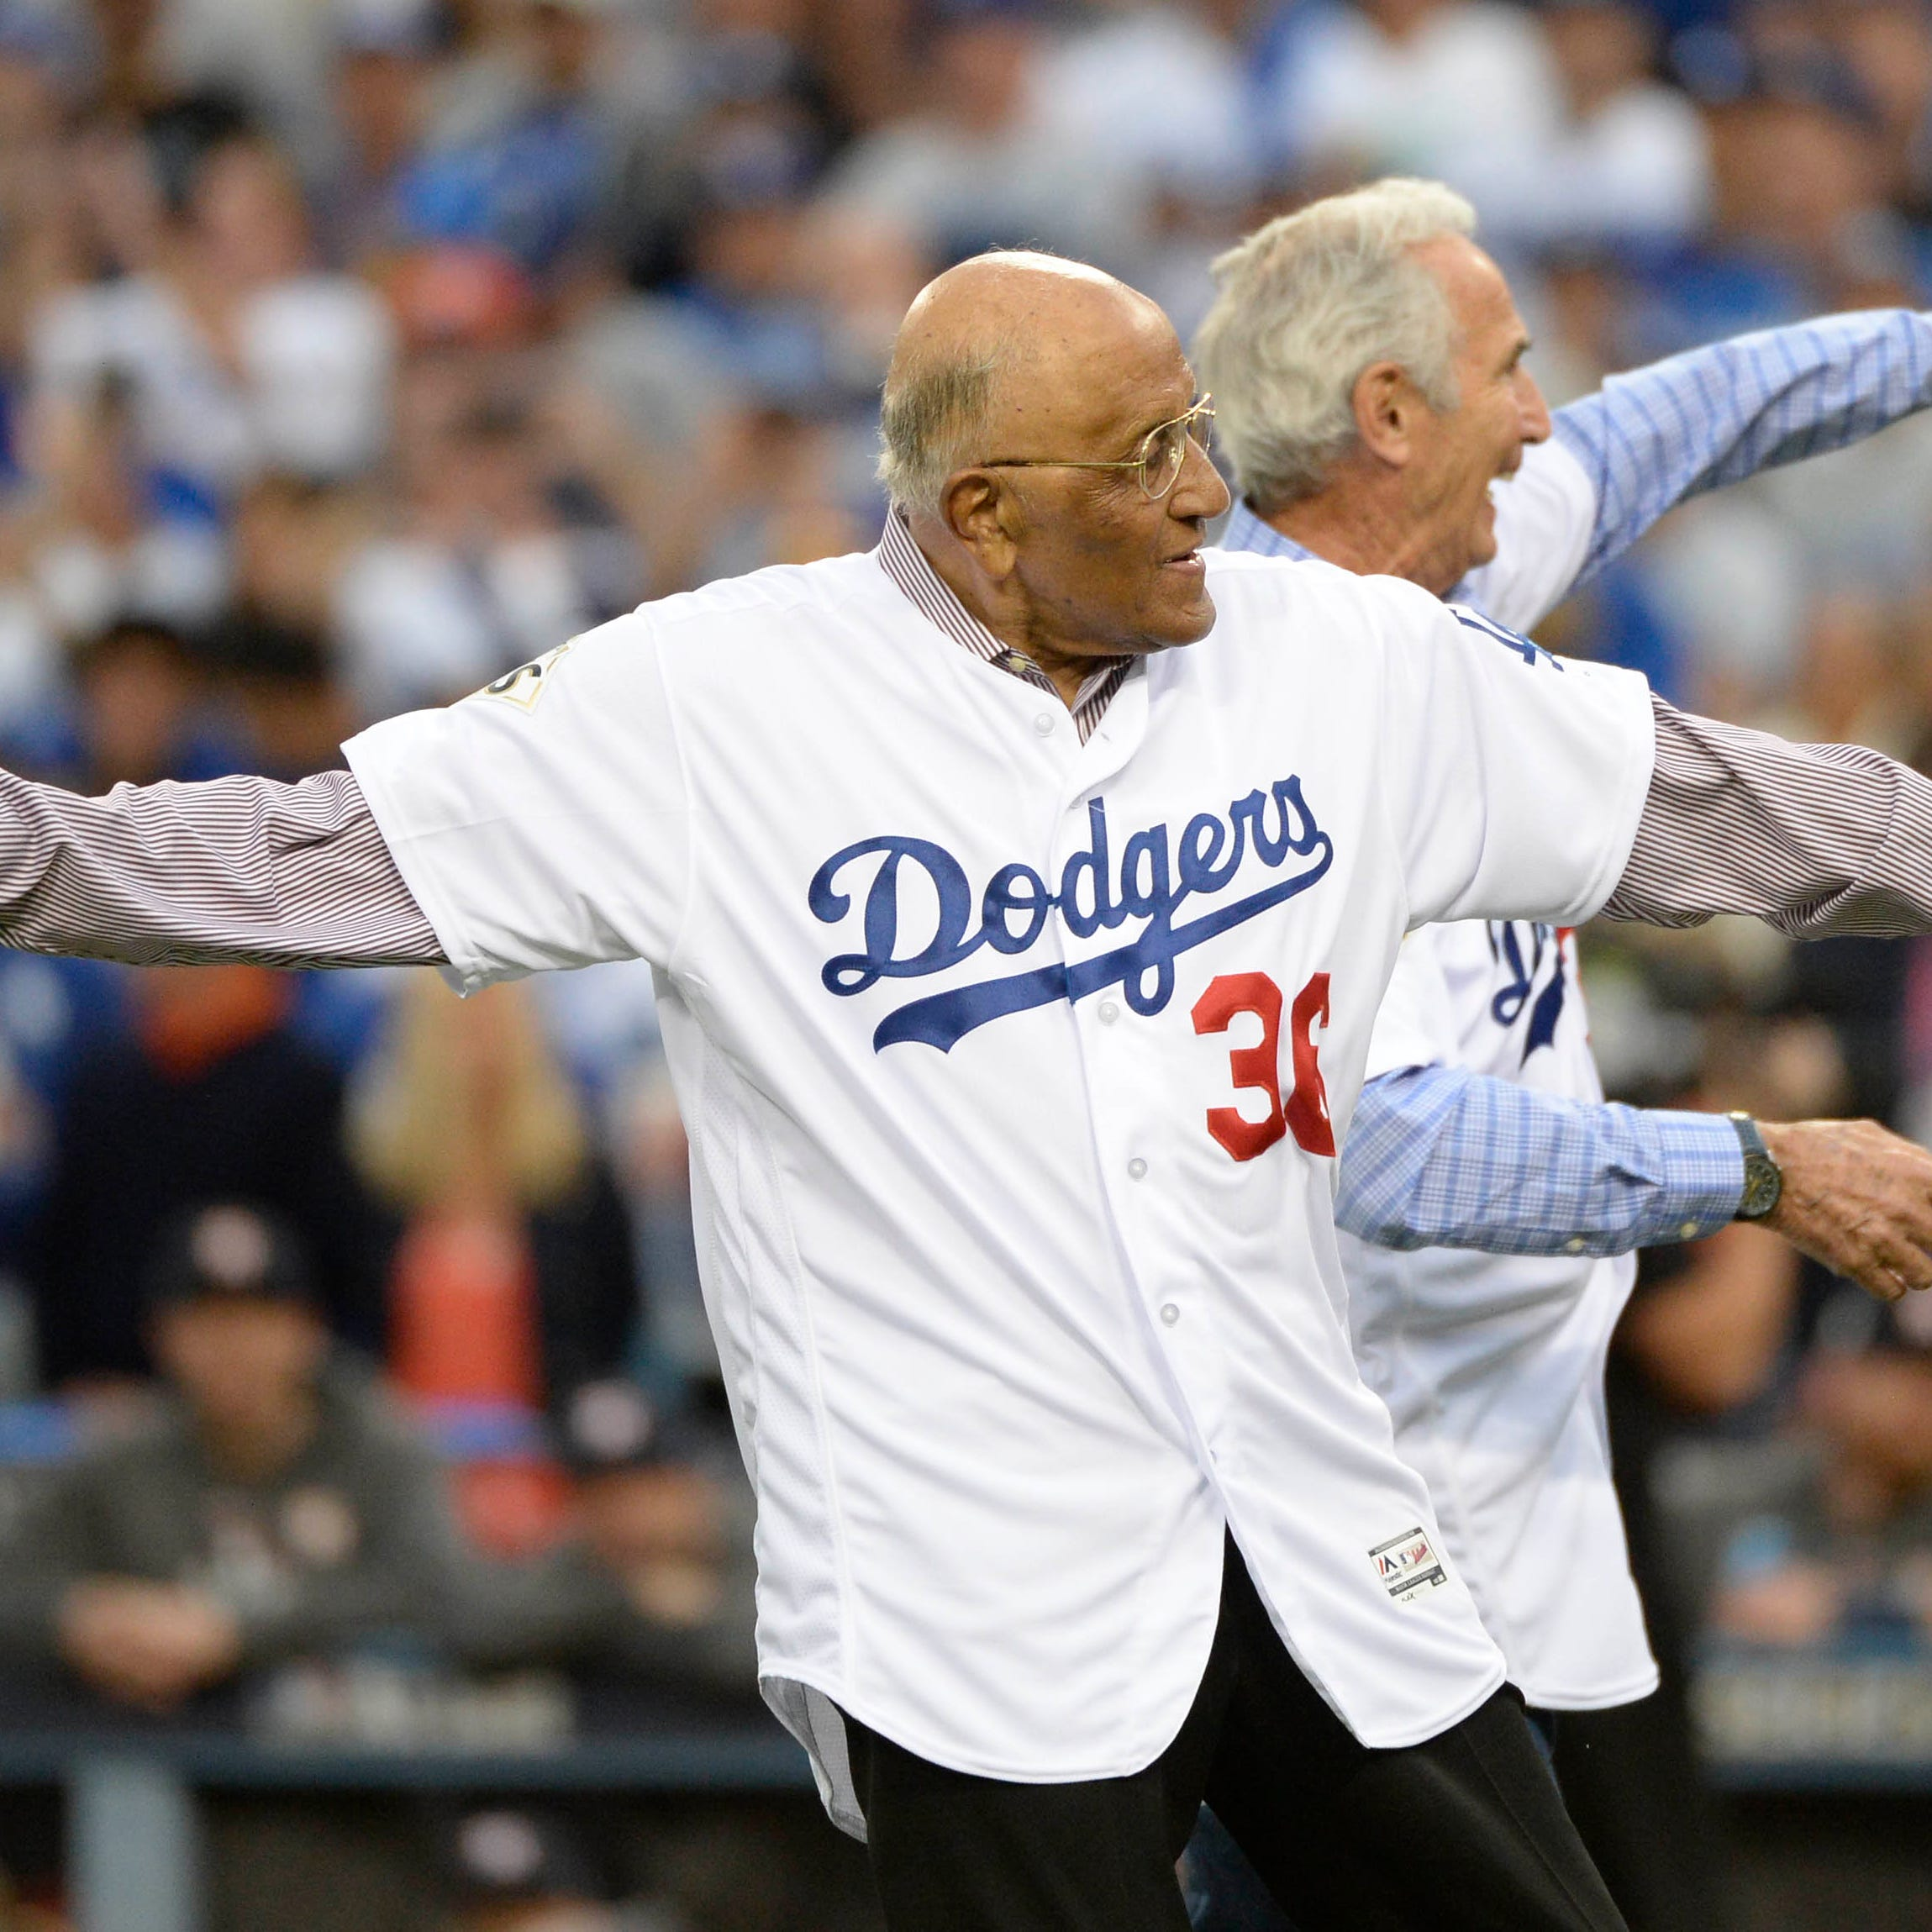 Los Angeles Dodgers former player Don Newcombe (36) throws with Sandy Koufax during Game 7 of the 2017 World Series against the Houston Astros at Dodger Stadium.